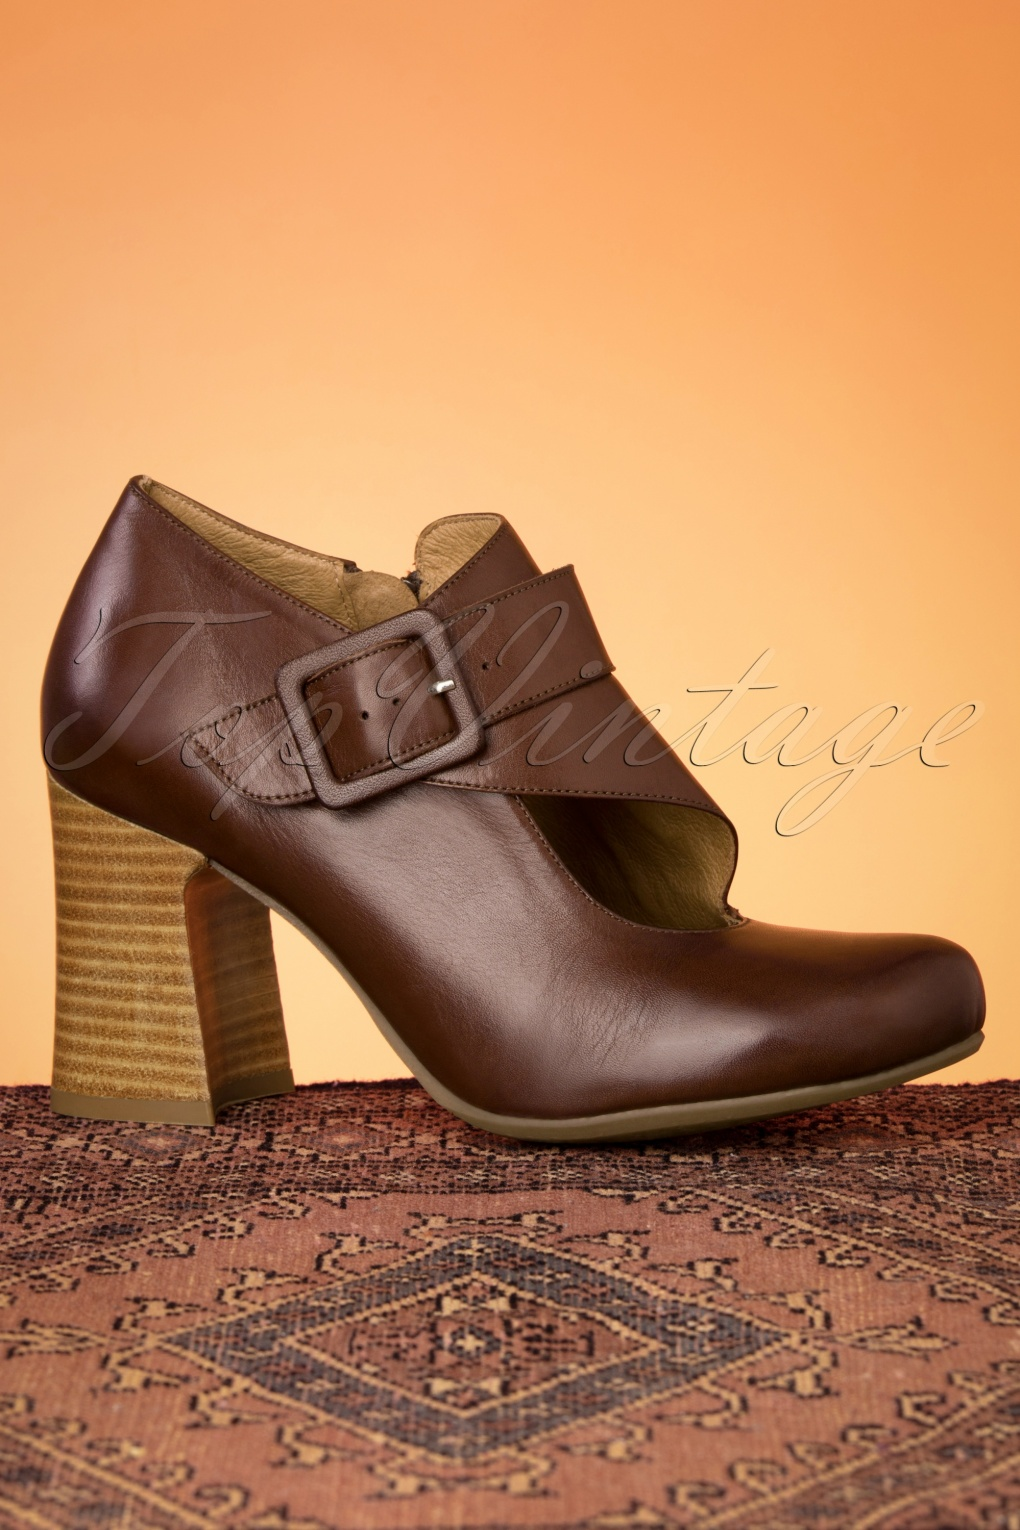 70s Shoes, Platforms, Boots, Heels | 1970s Shoes 60s Knight Leather Shoe Booties in Brown £133.29 AT vintagedancer.com